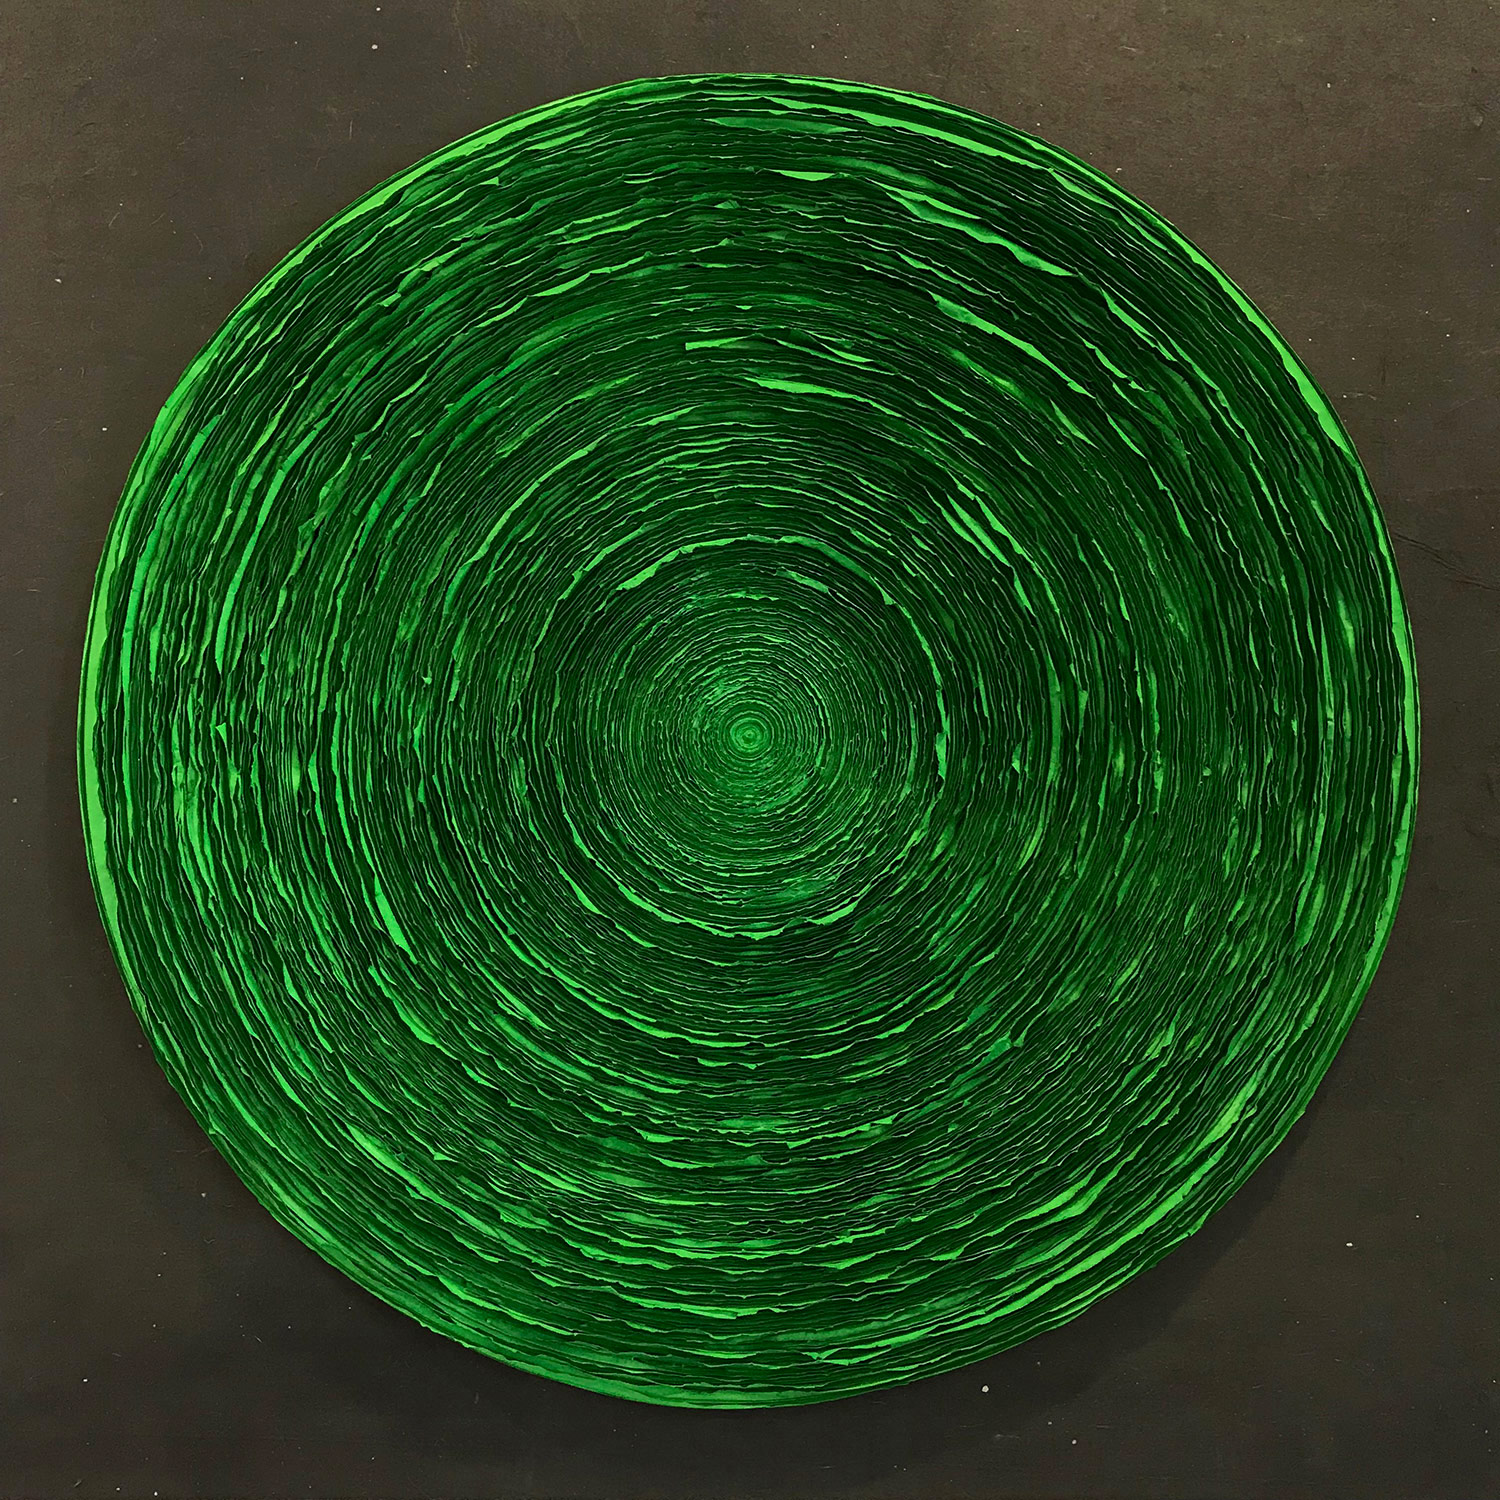 Wave (Emerald Green), 2015